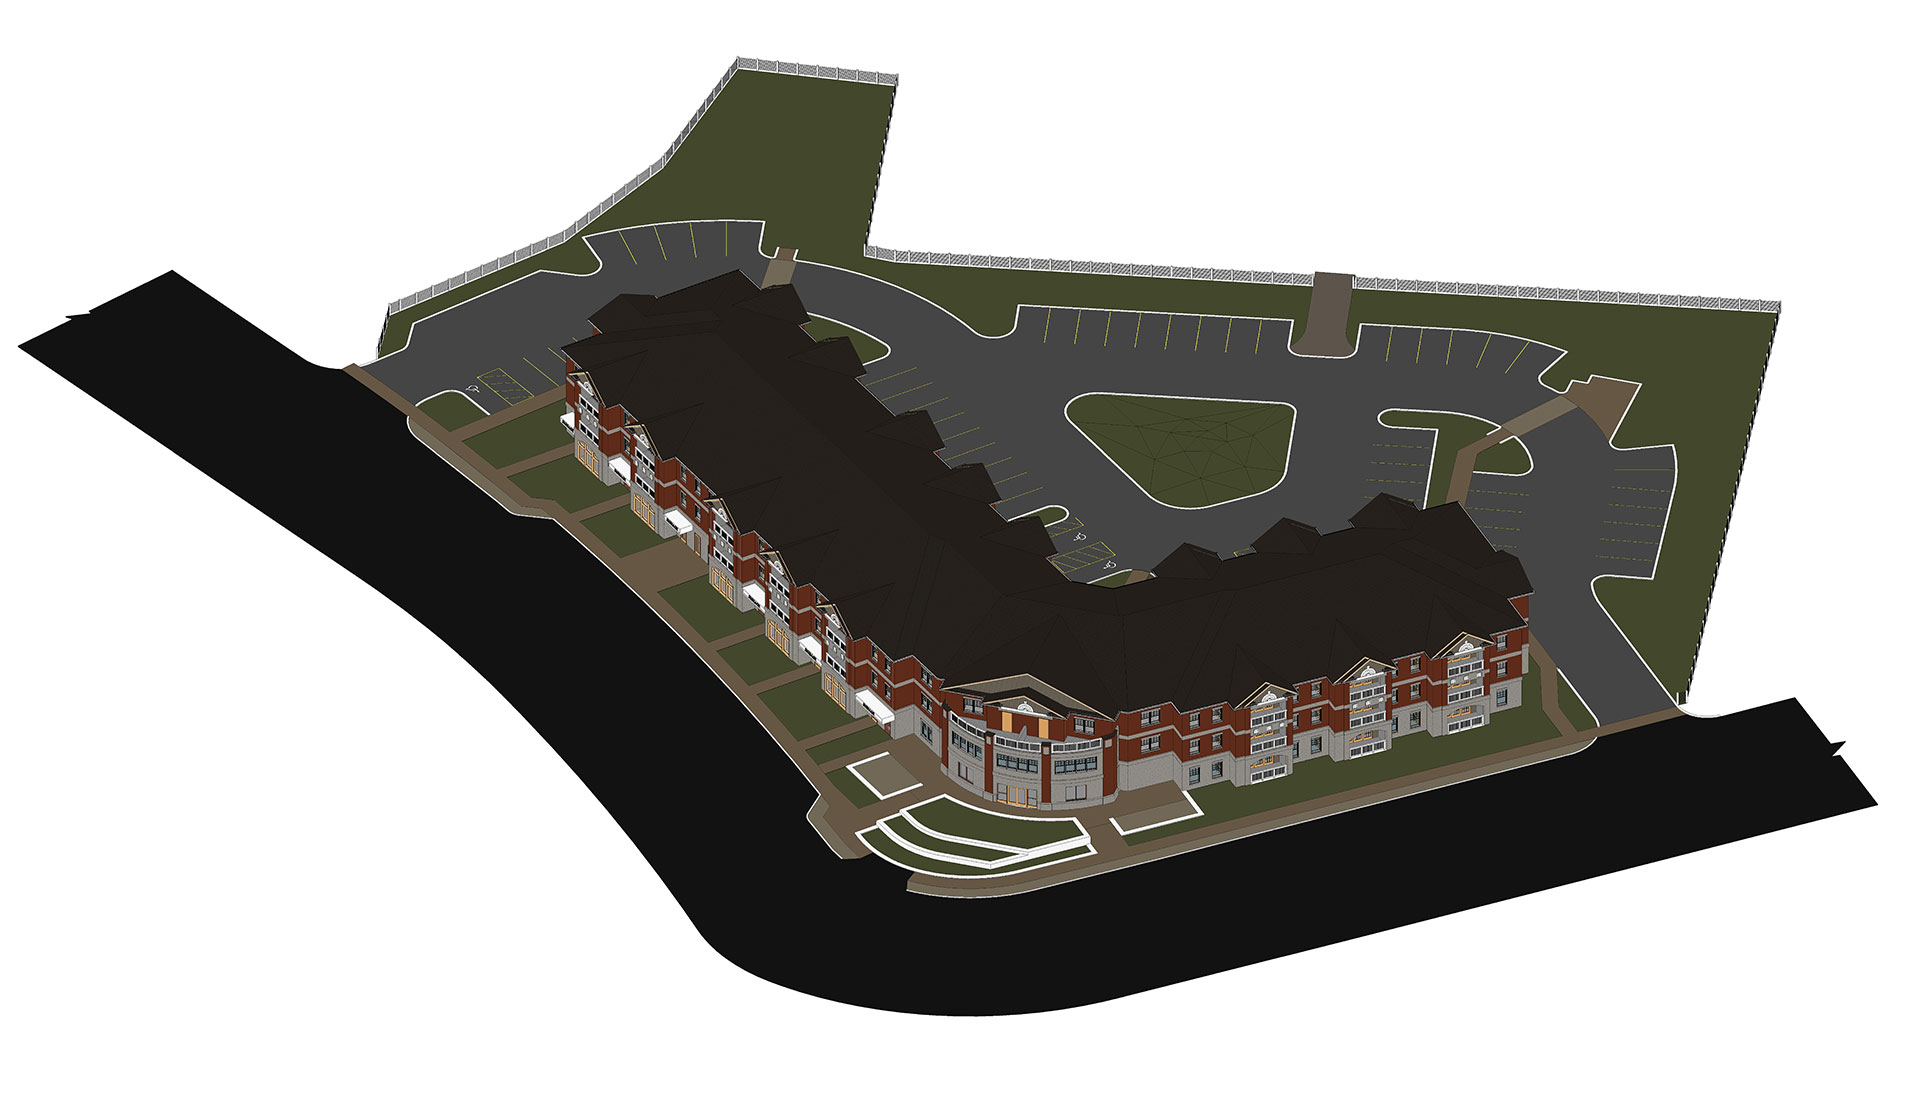 Top-View_3D-BIM-Model_Residential-Project_Architectural-Revit-Modeling-by-United-BIM